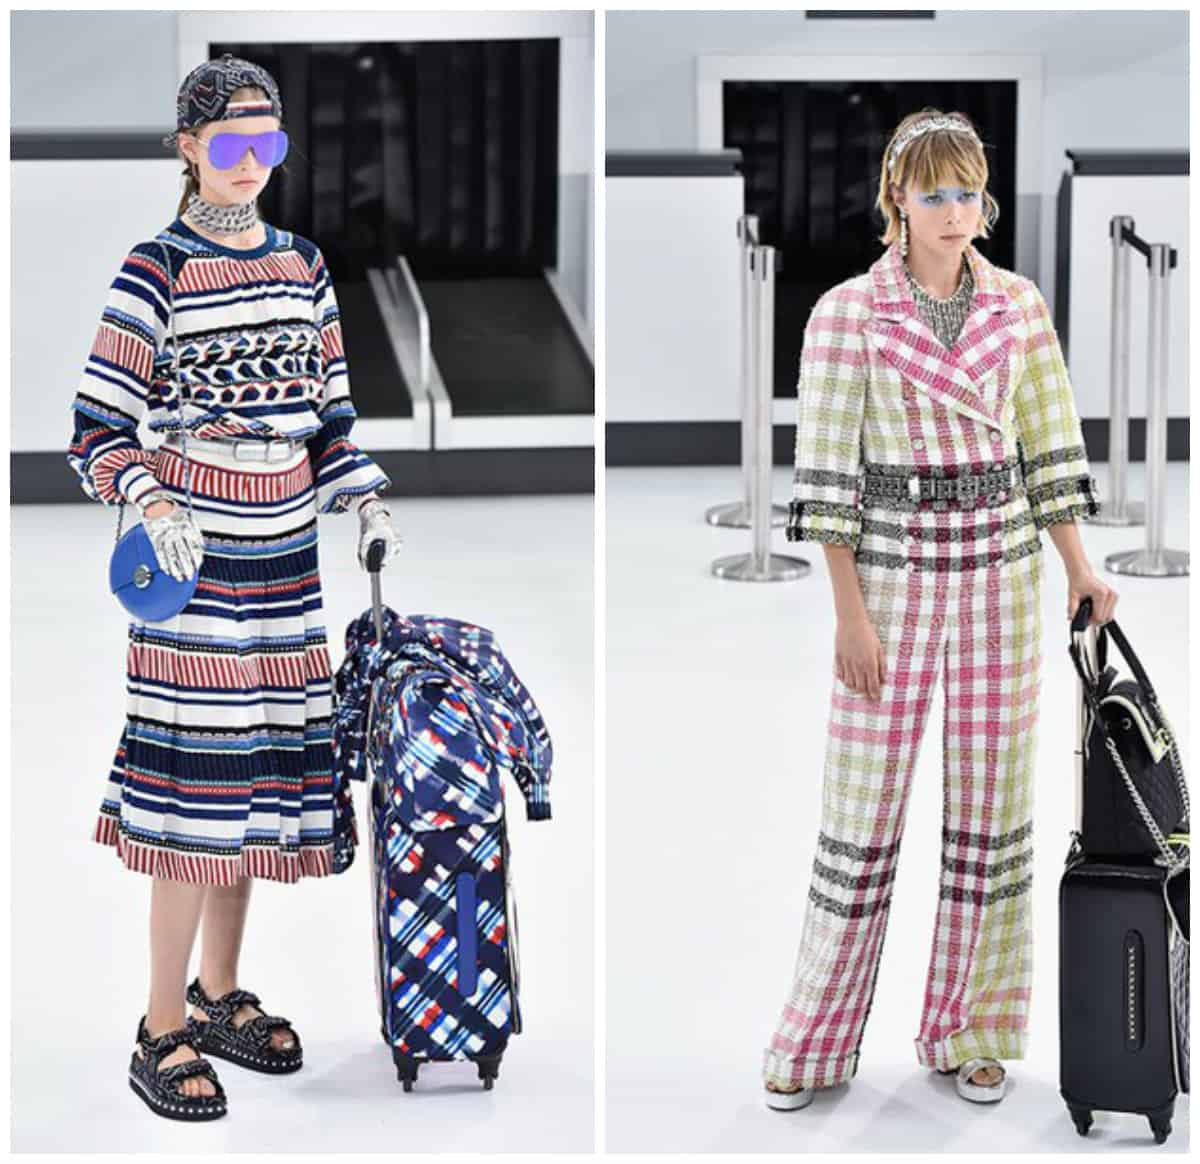 Paris-Fashion-Week-Chanel-show-Spring-Summer-2016-4